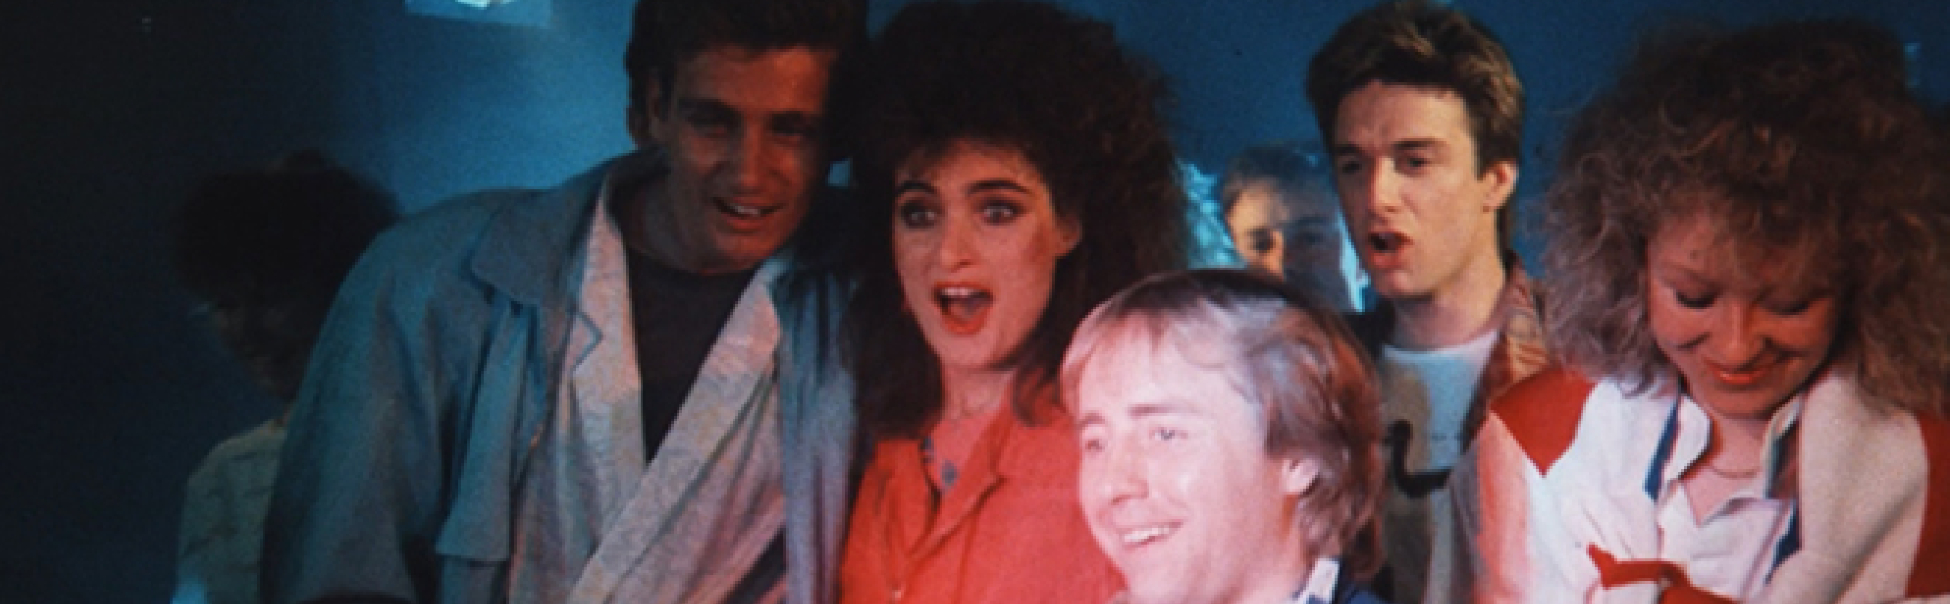 A group of four people smiling dressed in 80's style clothing and hairstyles.